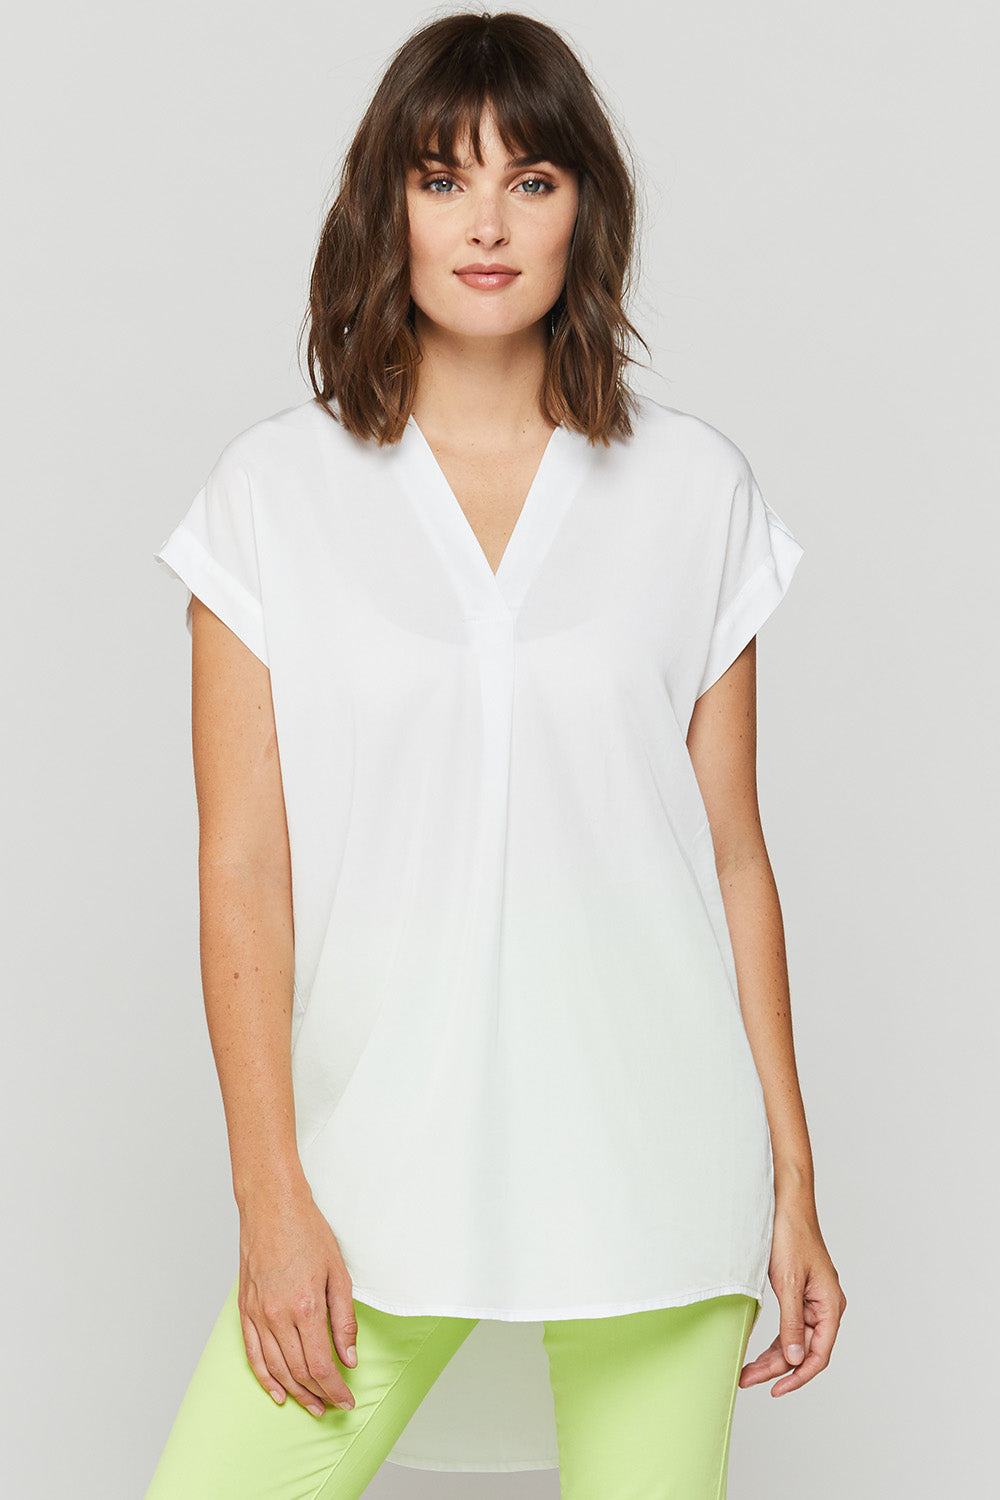 'VELVET HEART' WHITE SPLIT COLLAR TOP